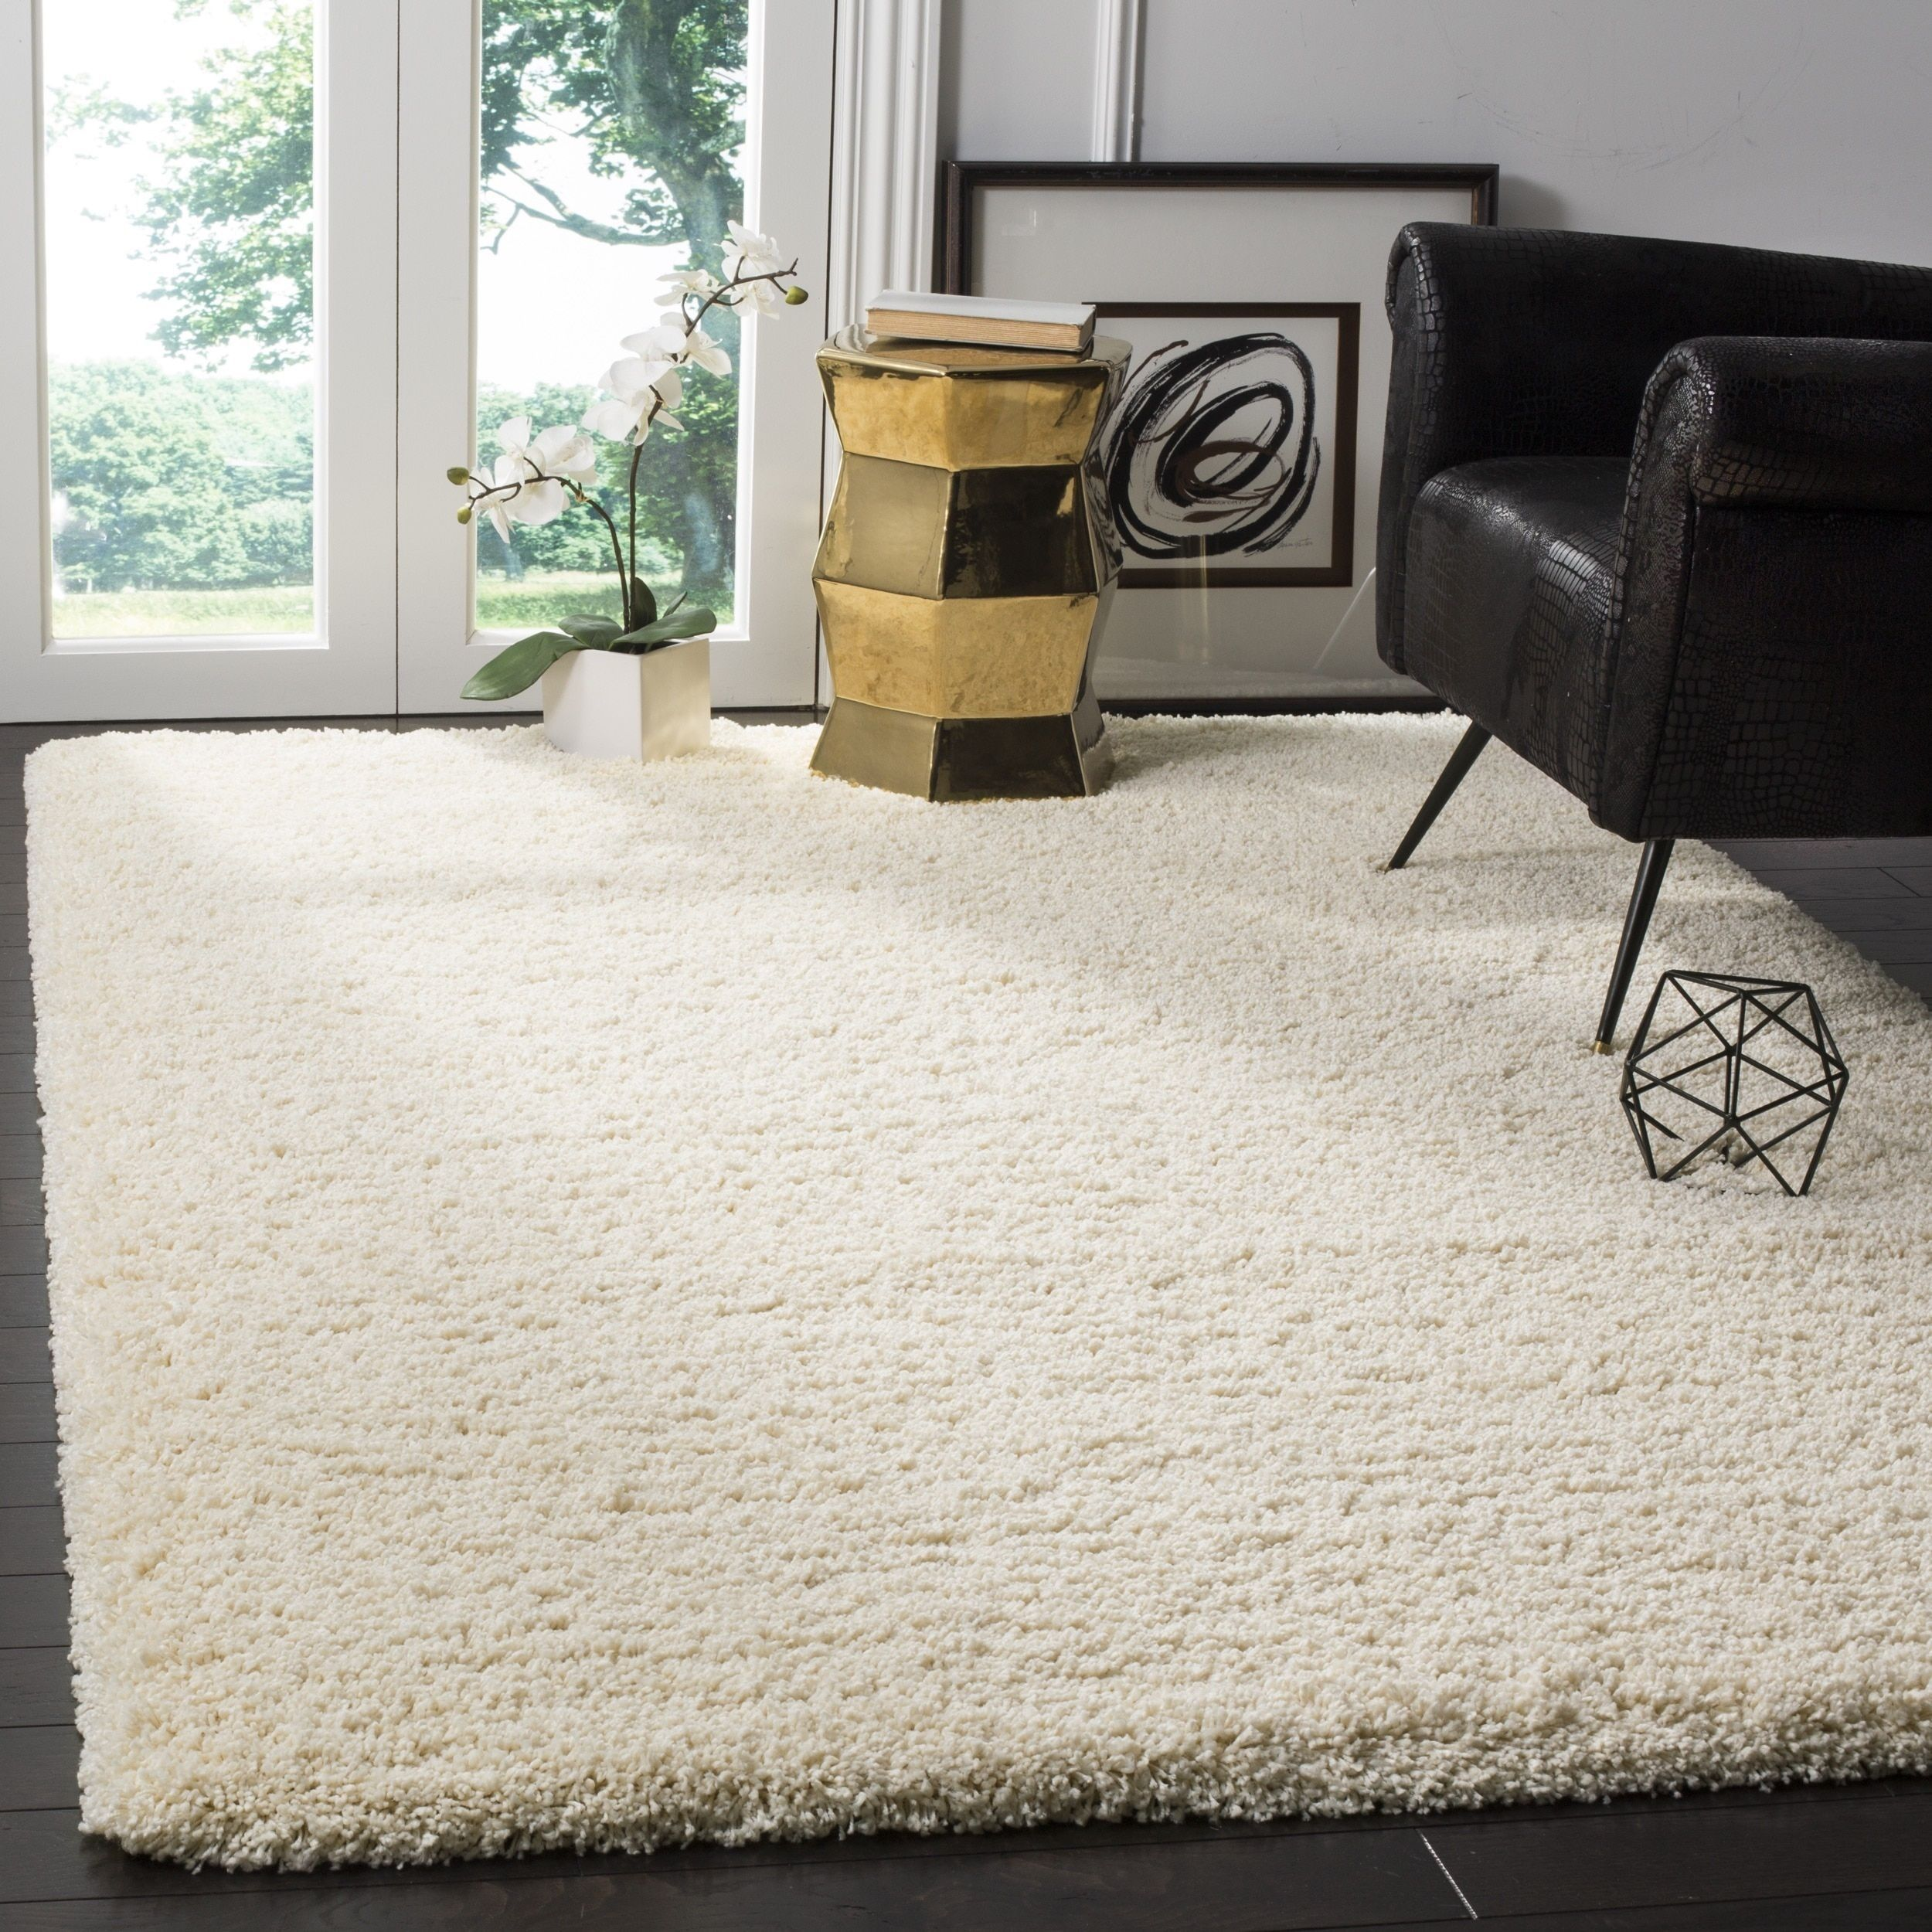 Safavieh California Cozy Plush Ivory Rug 8 6 Square Sg151 1212 9sq Size 9 X Polypropylene Solid